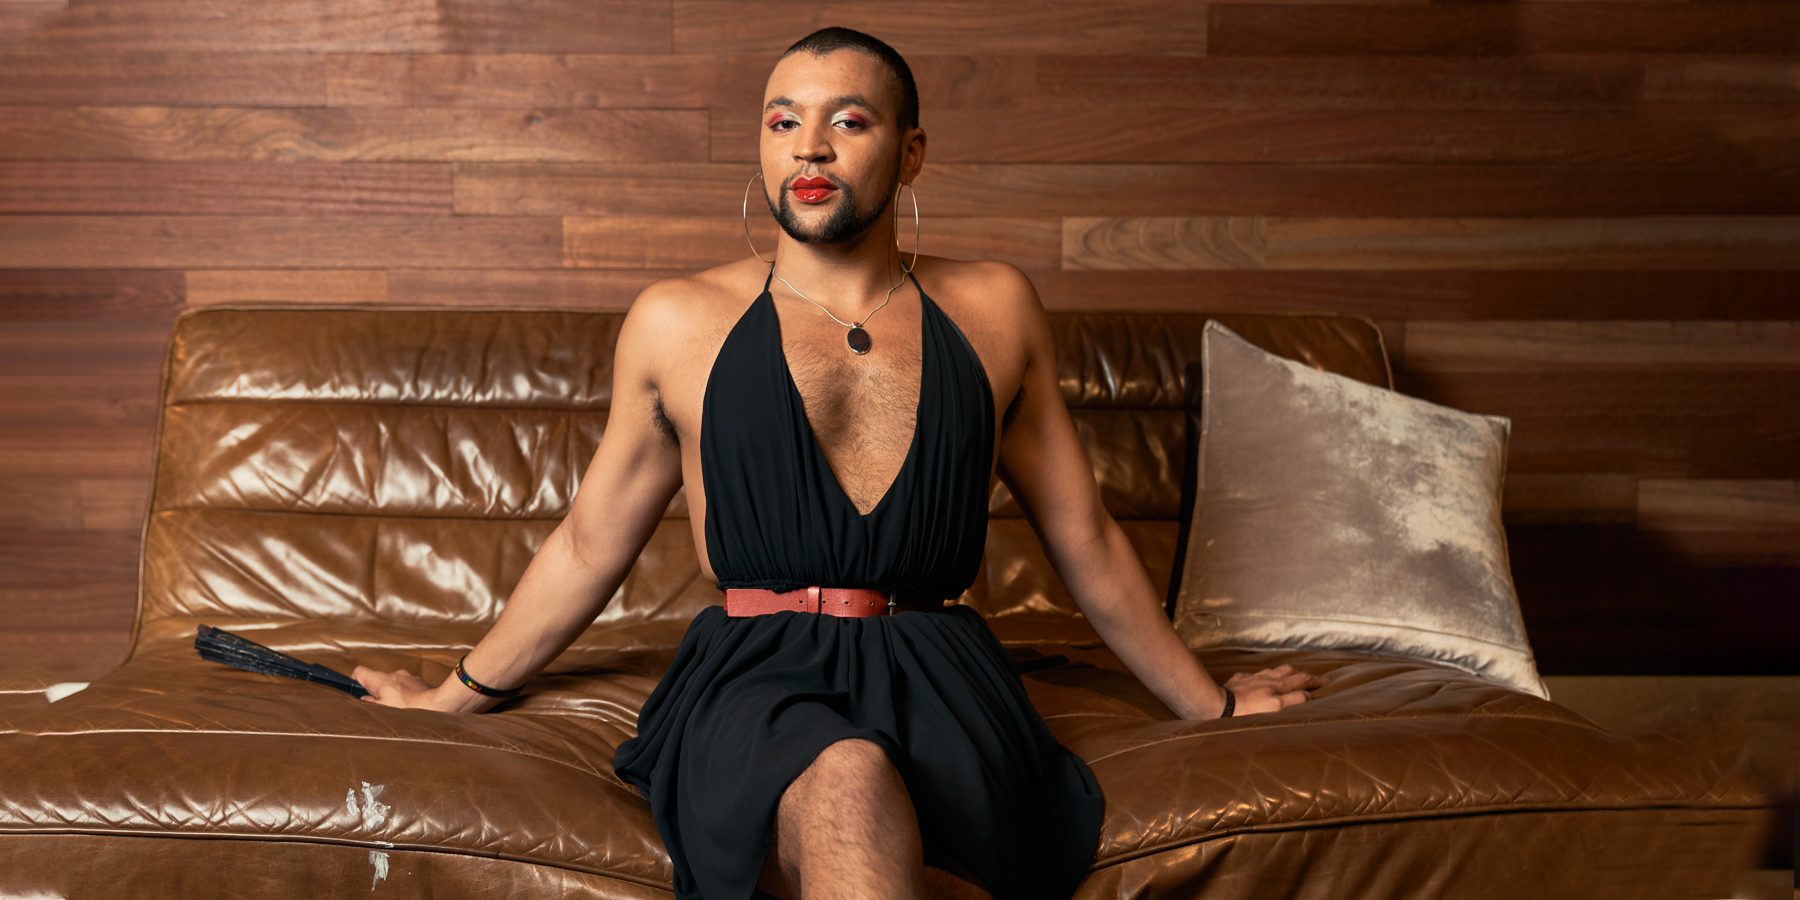 Dressed for Work, Dressed to Werk - 4 LGBTQIA+ Share their Style